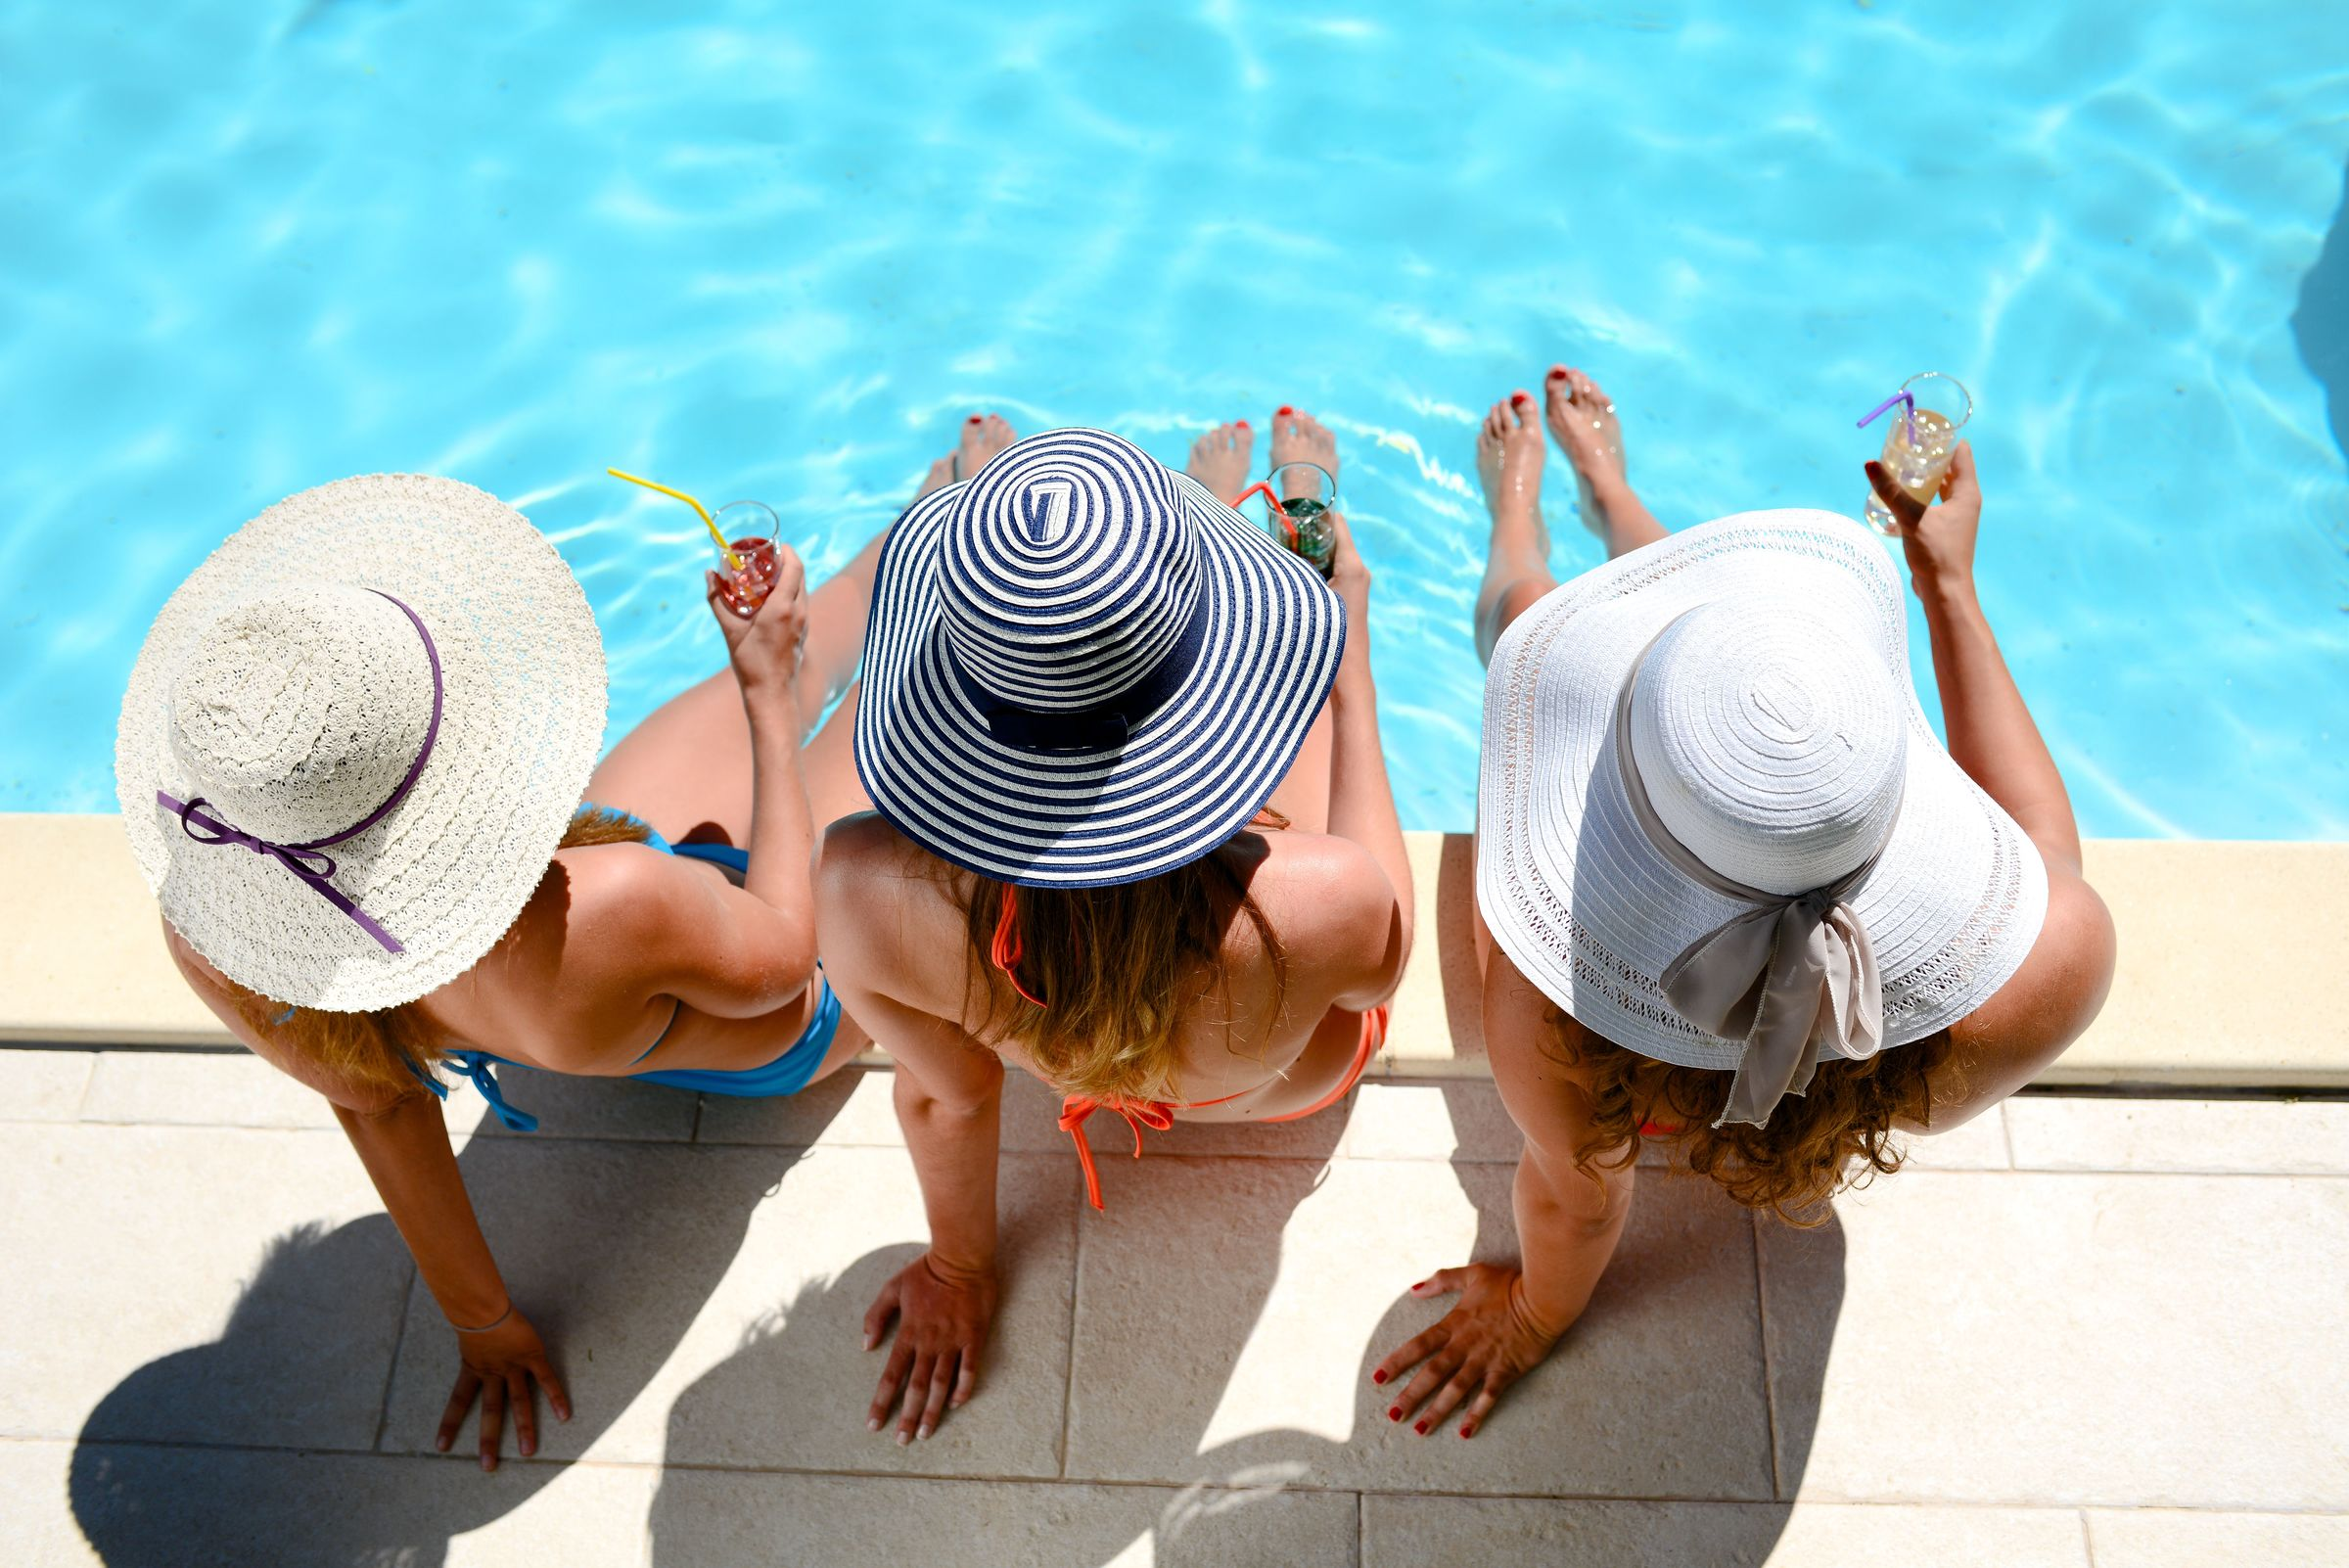 3 women sitting on the edge of a pool